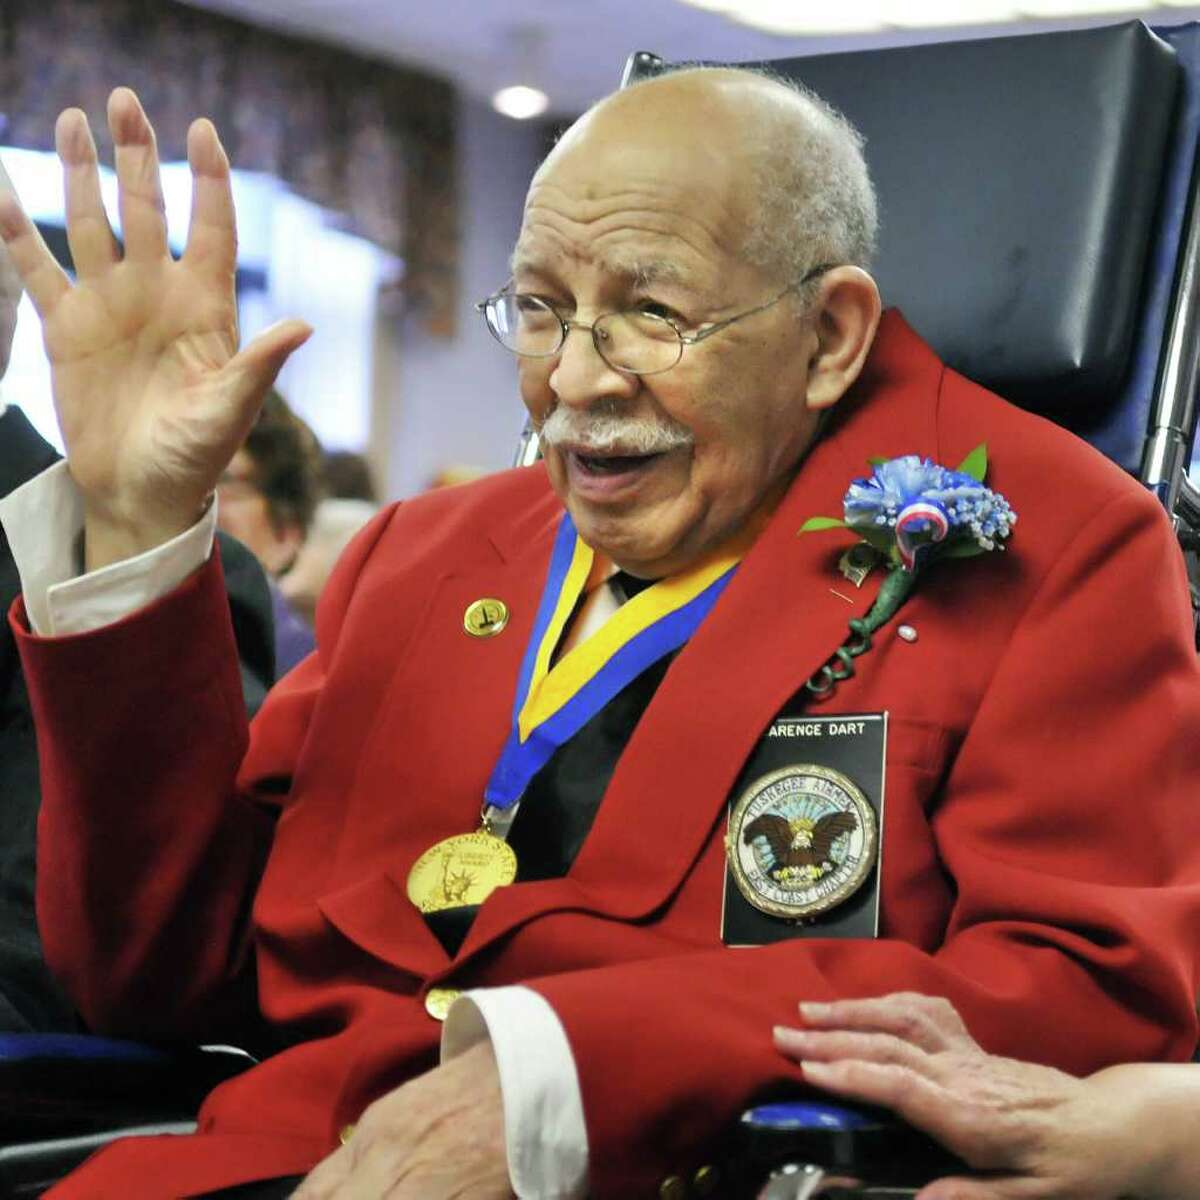 WW II fighter pilot and Tuskegee Airman Clarence Dart during a special ceremony honoring him at the Wesley Nursing Home in Saratoga Springs Wednesday morning April 20, 2011. (John Carl D'Annibale / Times Union)